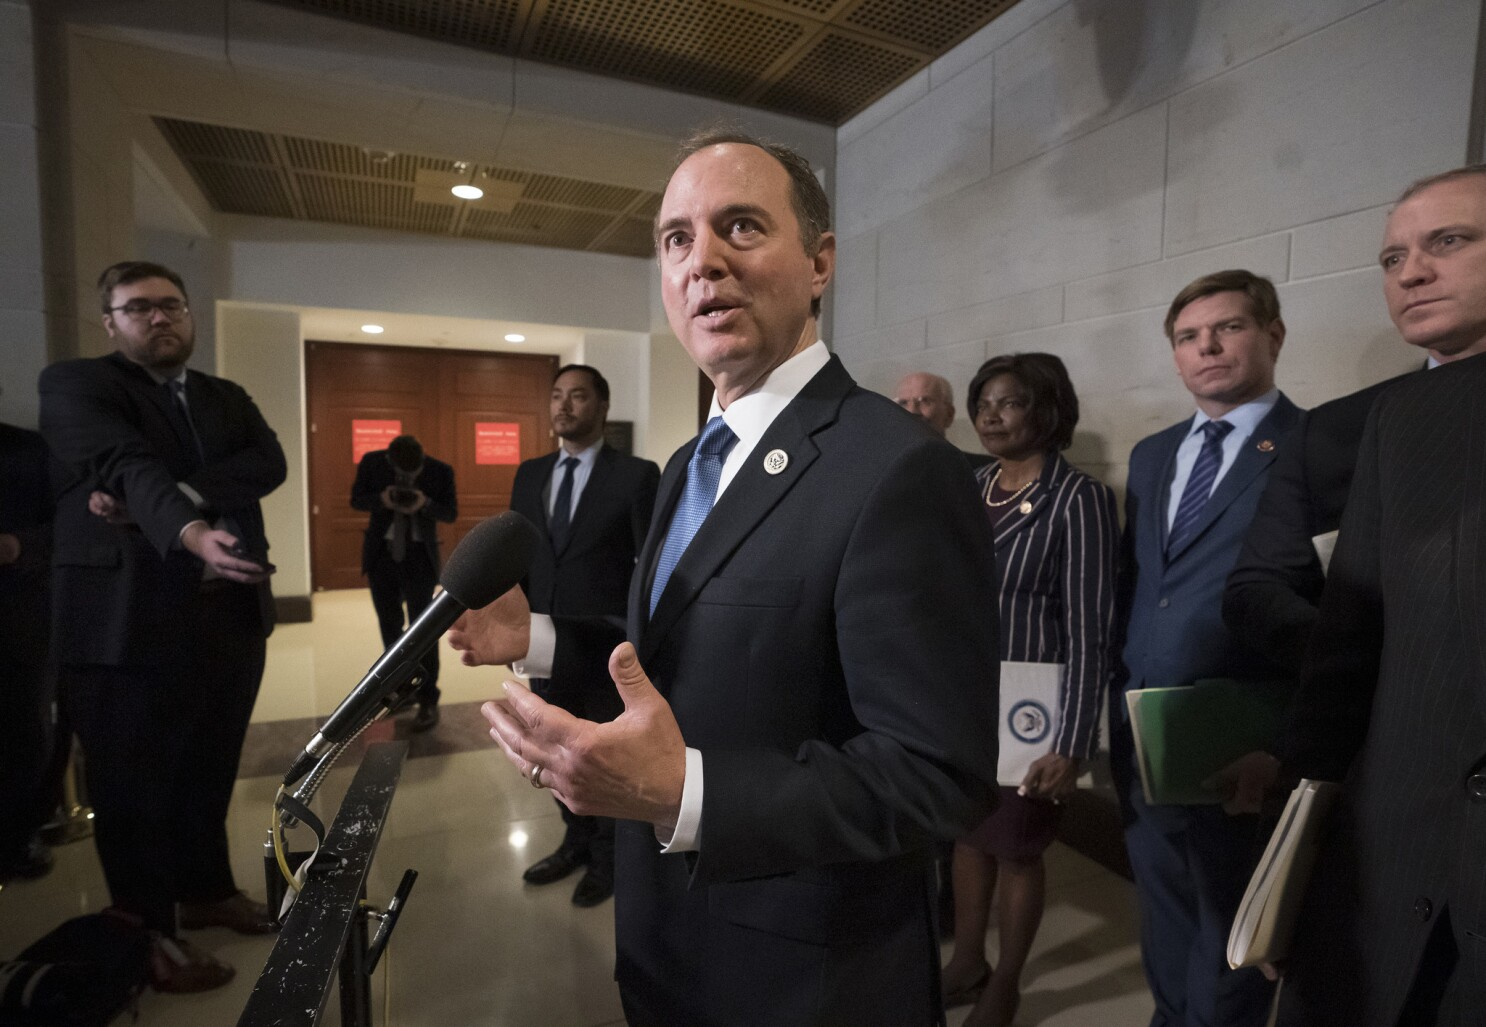 Adam Schiff didn't reveal anything we didn't already know about Trump